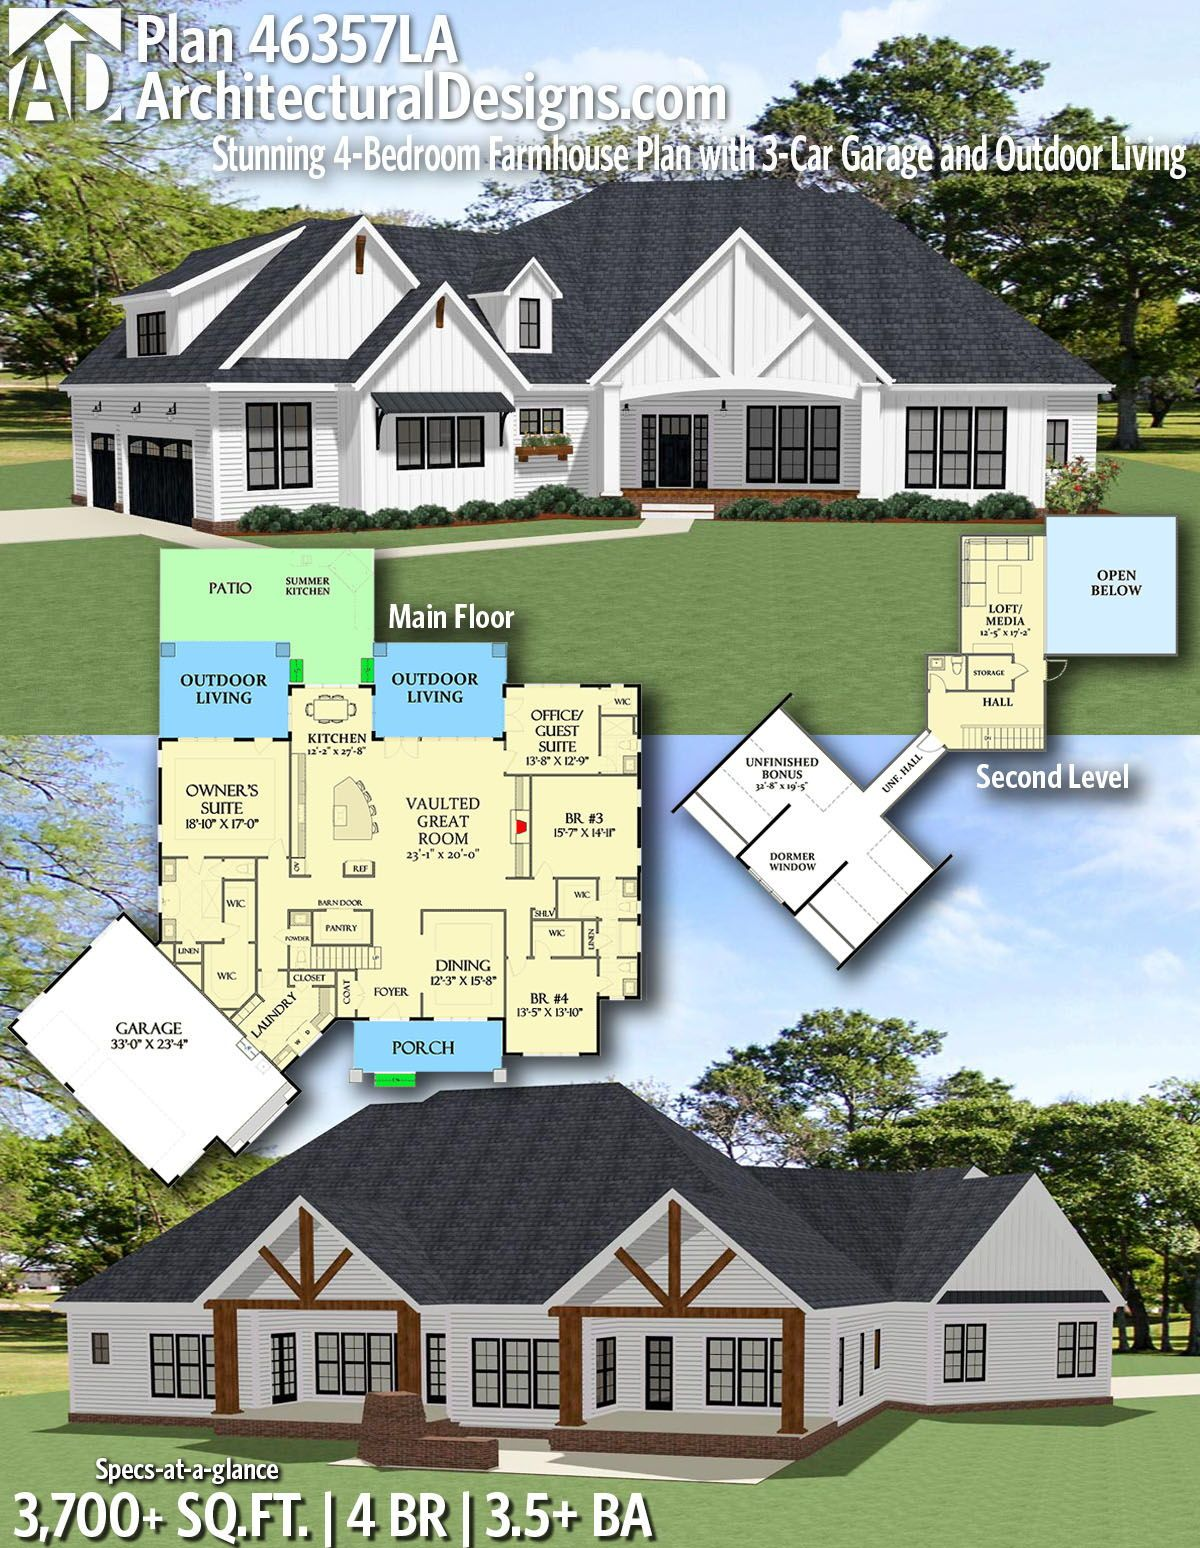 Plan 46357la Stunning 4 Bedroom Farmhouse Plan With 3 Car Garage And Outdoor Living Craftsman House Plans Farmhouse Plans Craftsman Farmhouse